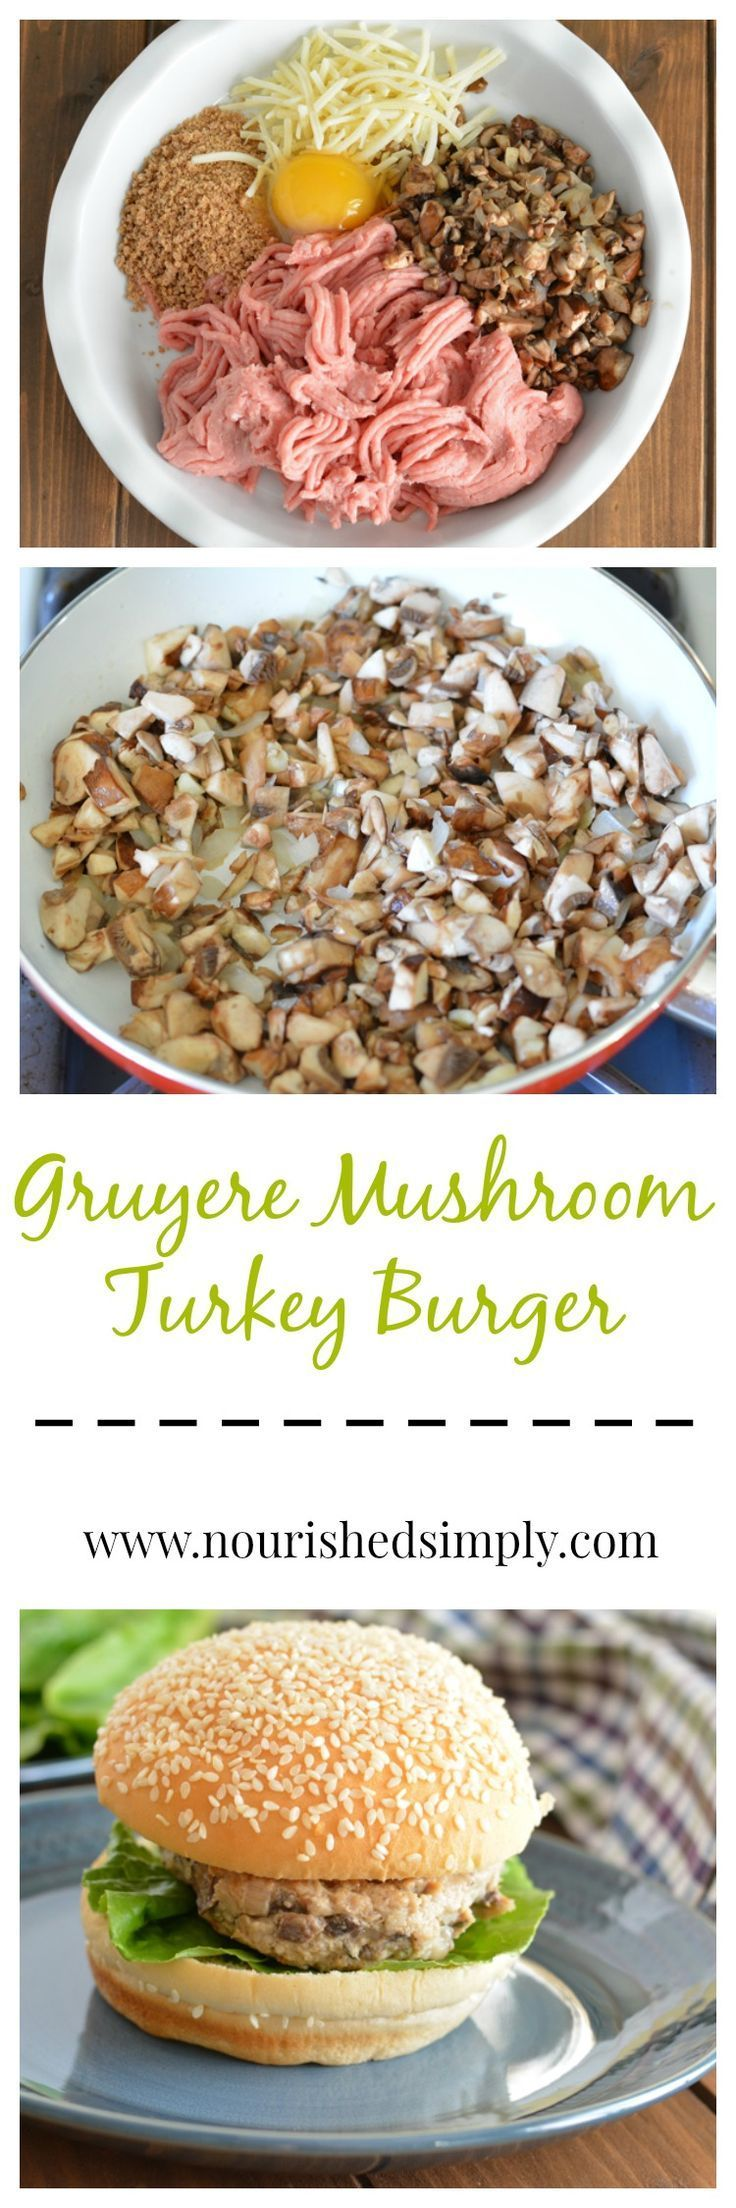 Are you looking for a better-for-you burger? Turkey is lower in fat than beef. You won't miss beef burgers after you taste this Gruyere Mushroom Turkey Burger Recipe.